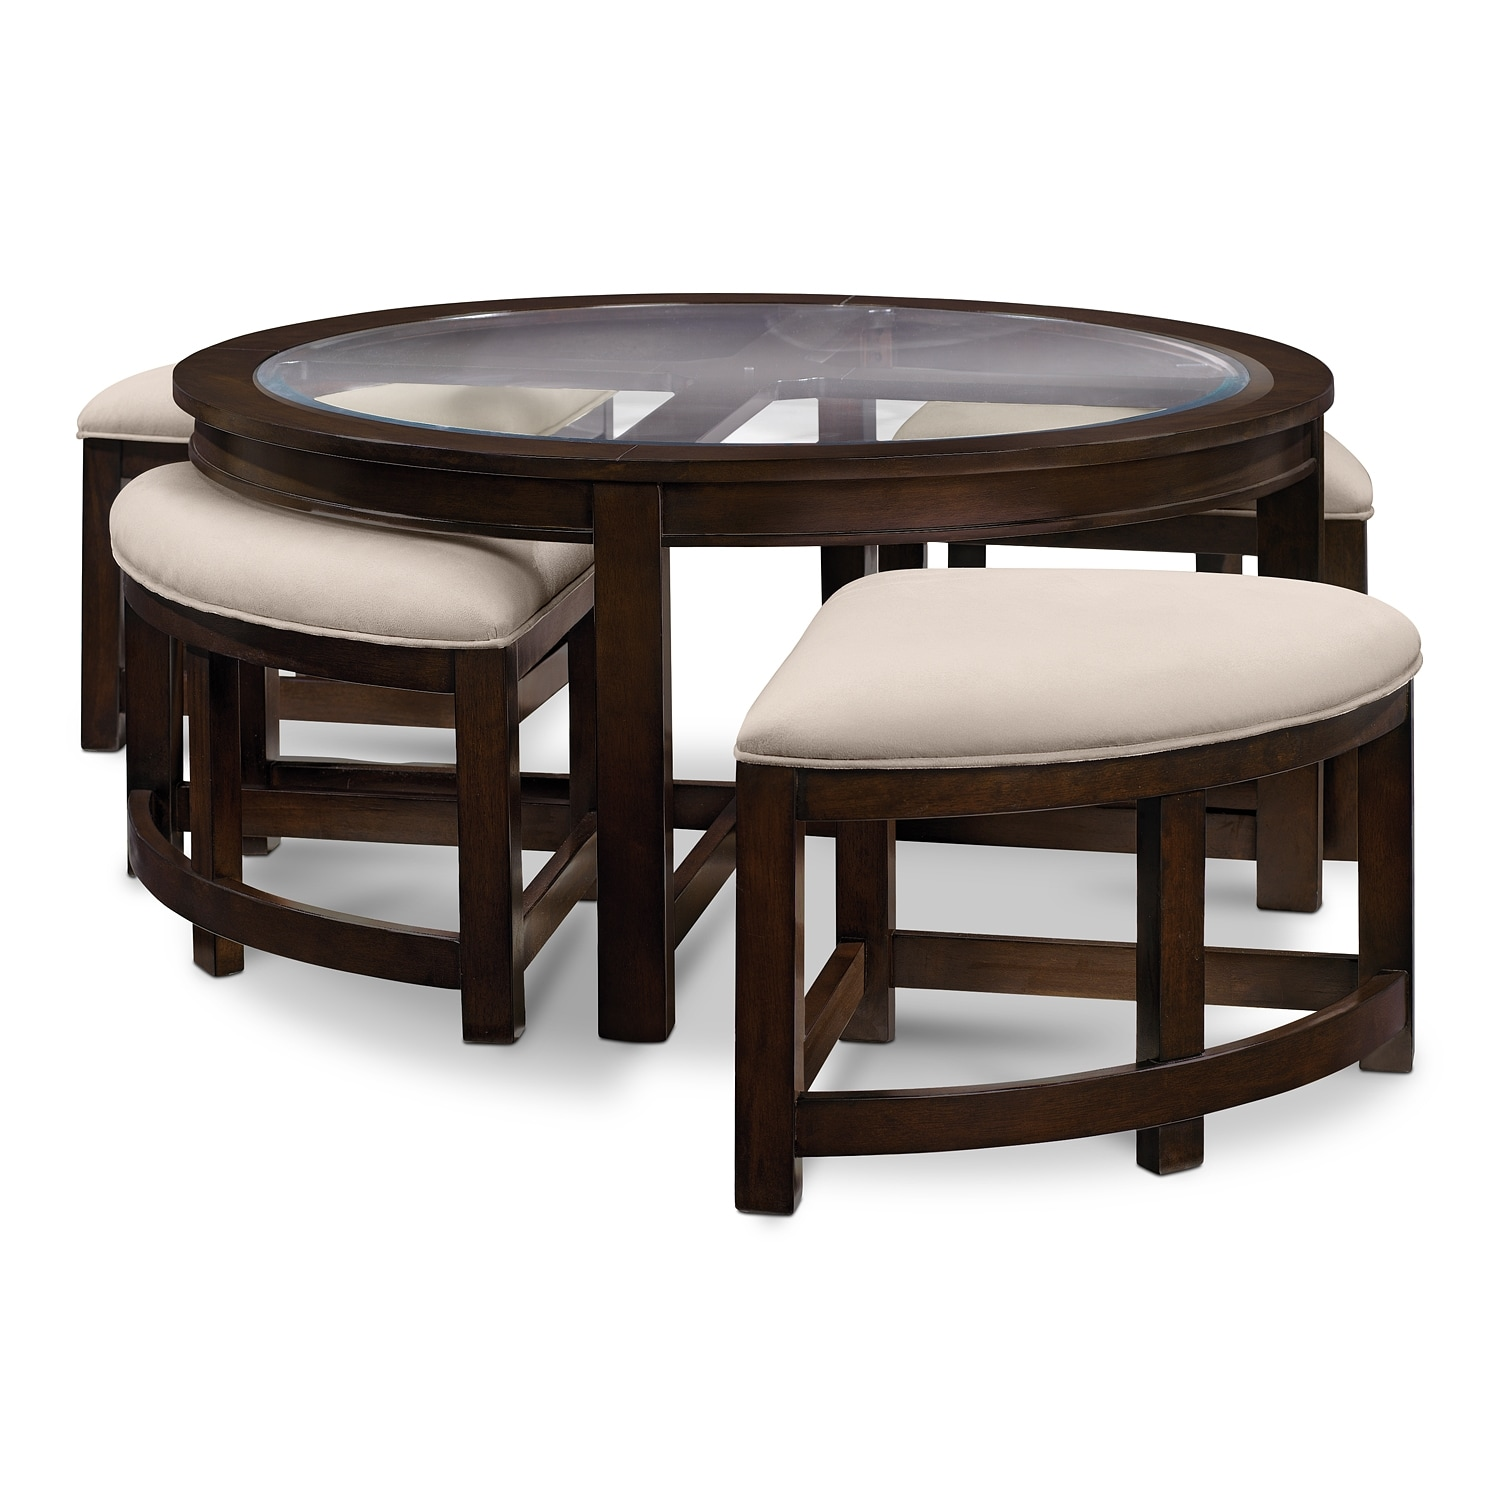 coffee table with chairs fishing chair price four corners cocktail w 4 benches merlot value